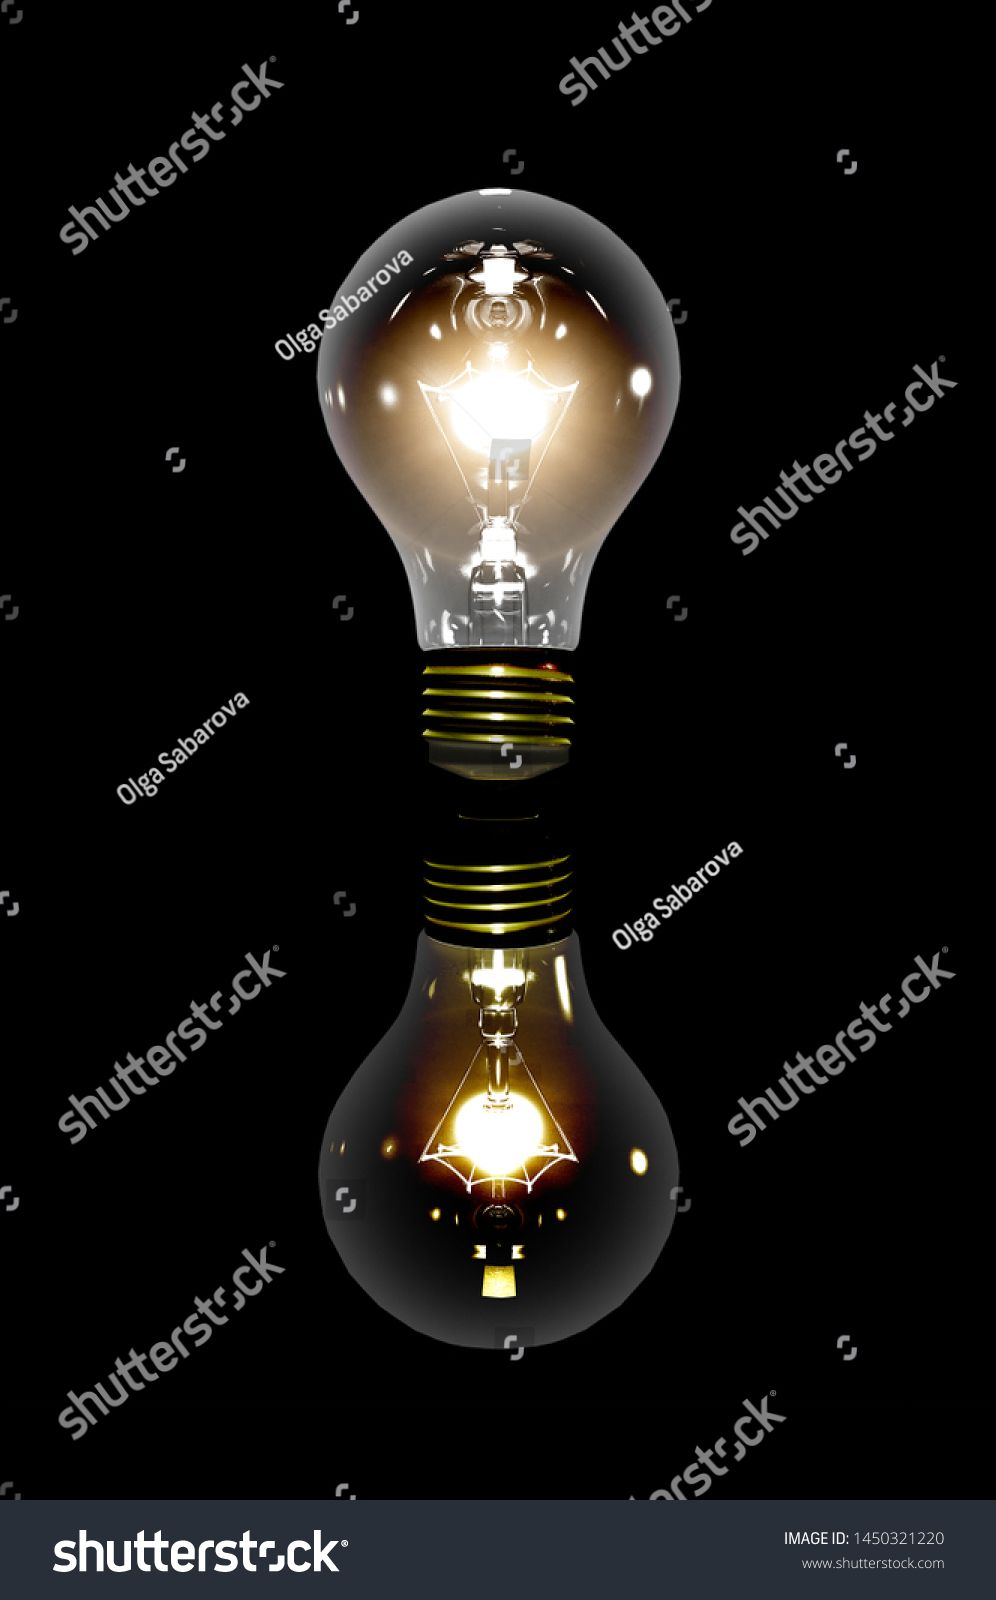 Realistic Light Bulb On The Black Background With Reflection Lamp Light In The Dark Electric Bulb Glowing Light I In 2020 With Images Electric Bulb Light Bulb Light In The Dark